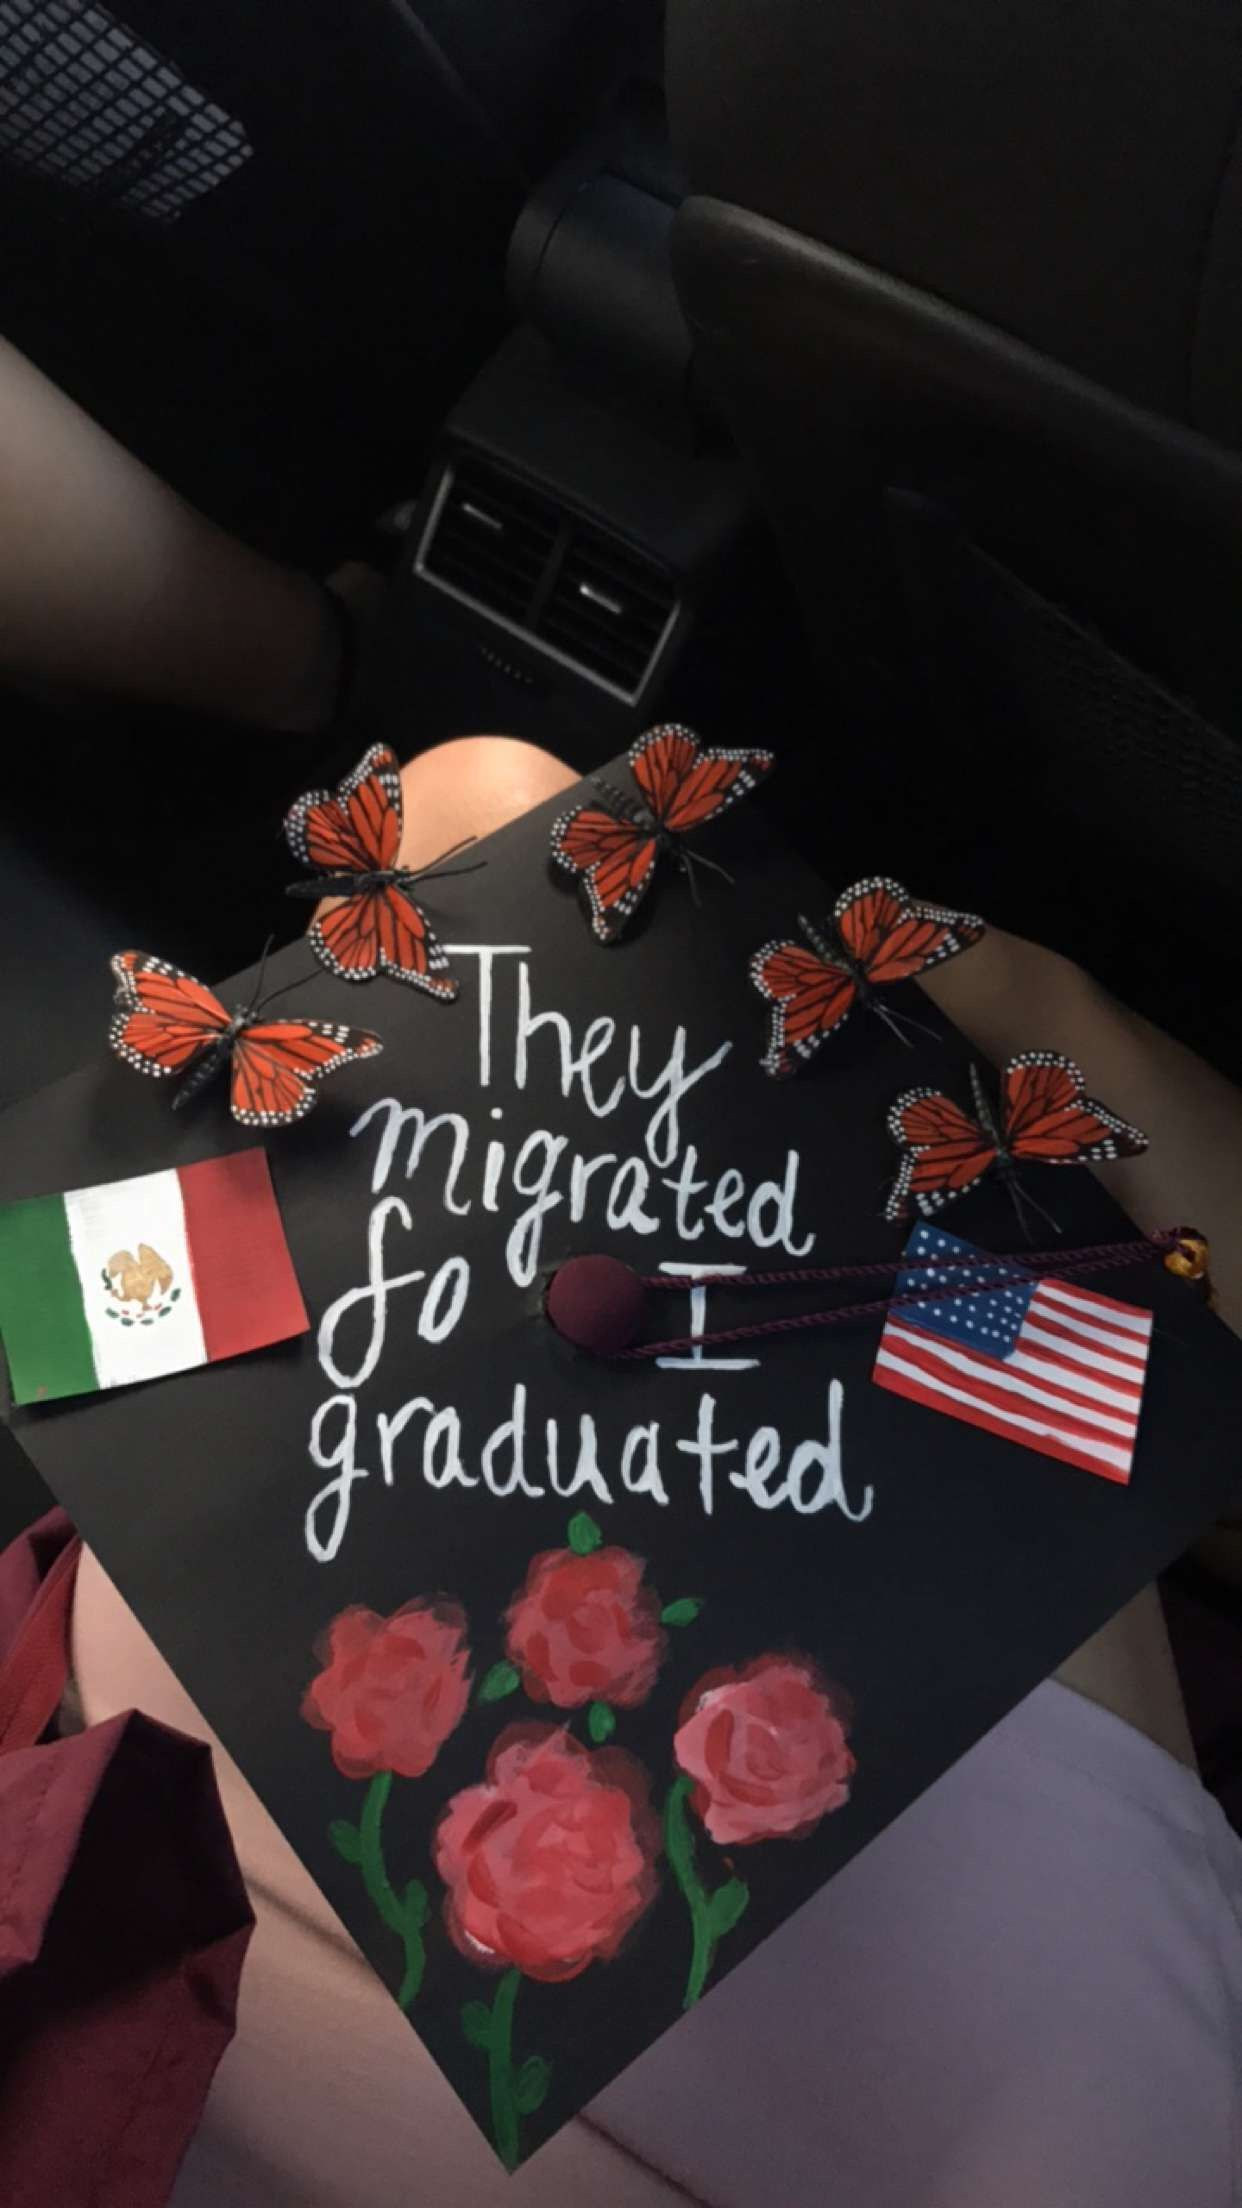 How I Ended Up Decorating My Cap Latina Graduation Cap Mexico